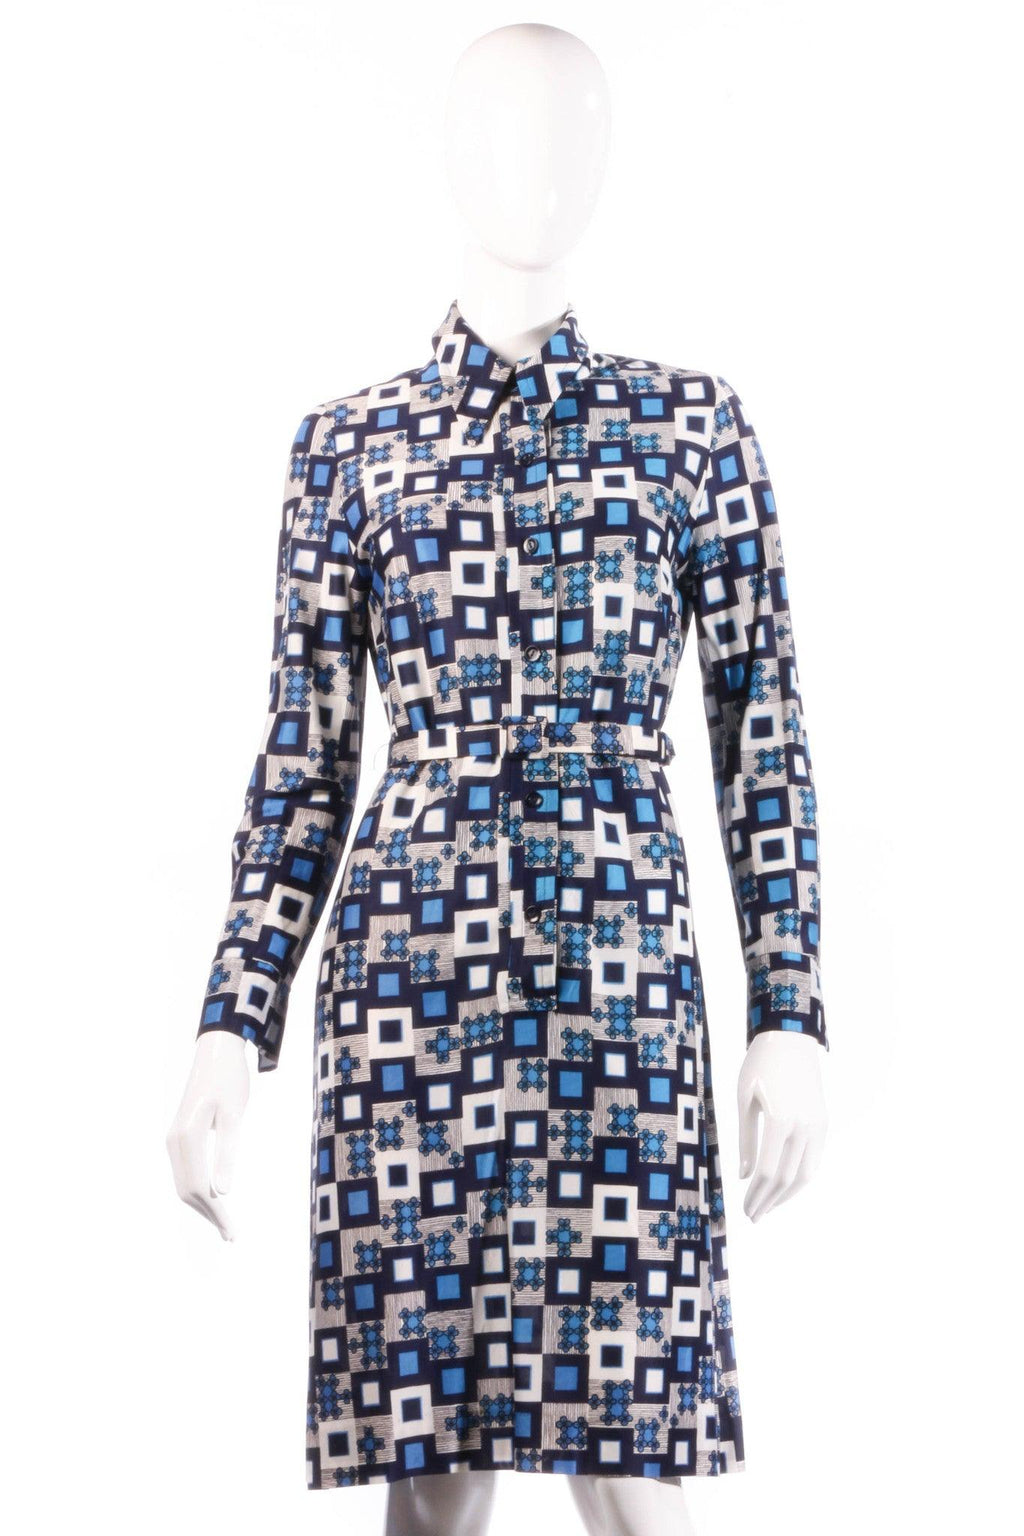 Sidgreene blue geometric print dress